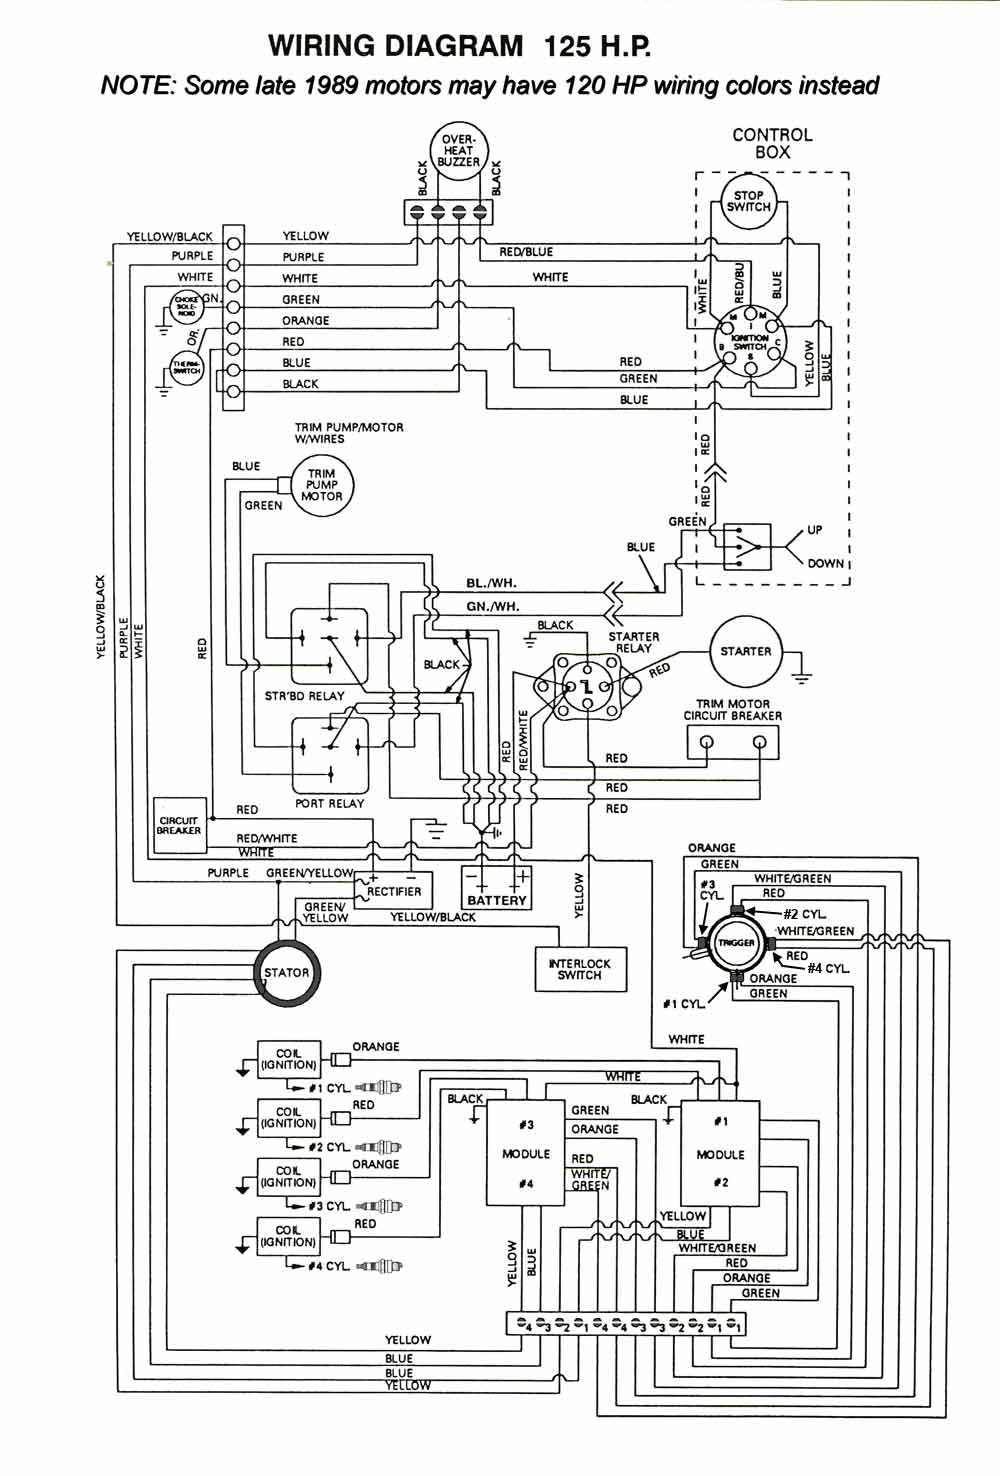 hight resolution of wiring diagram for a 1986 bayliner 16 wiring diagram new 1989 skeeter boat wiring diagram